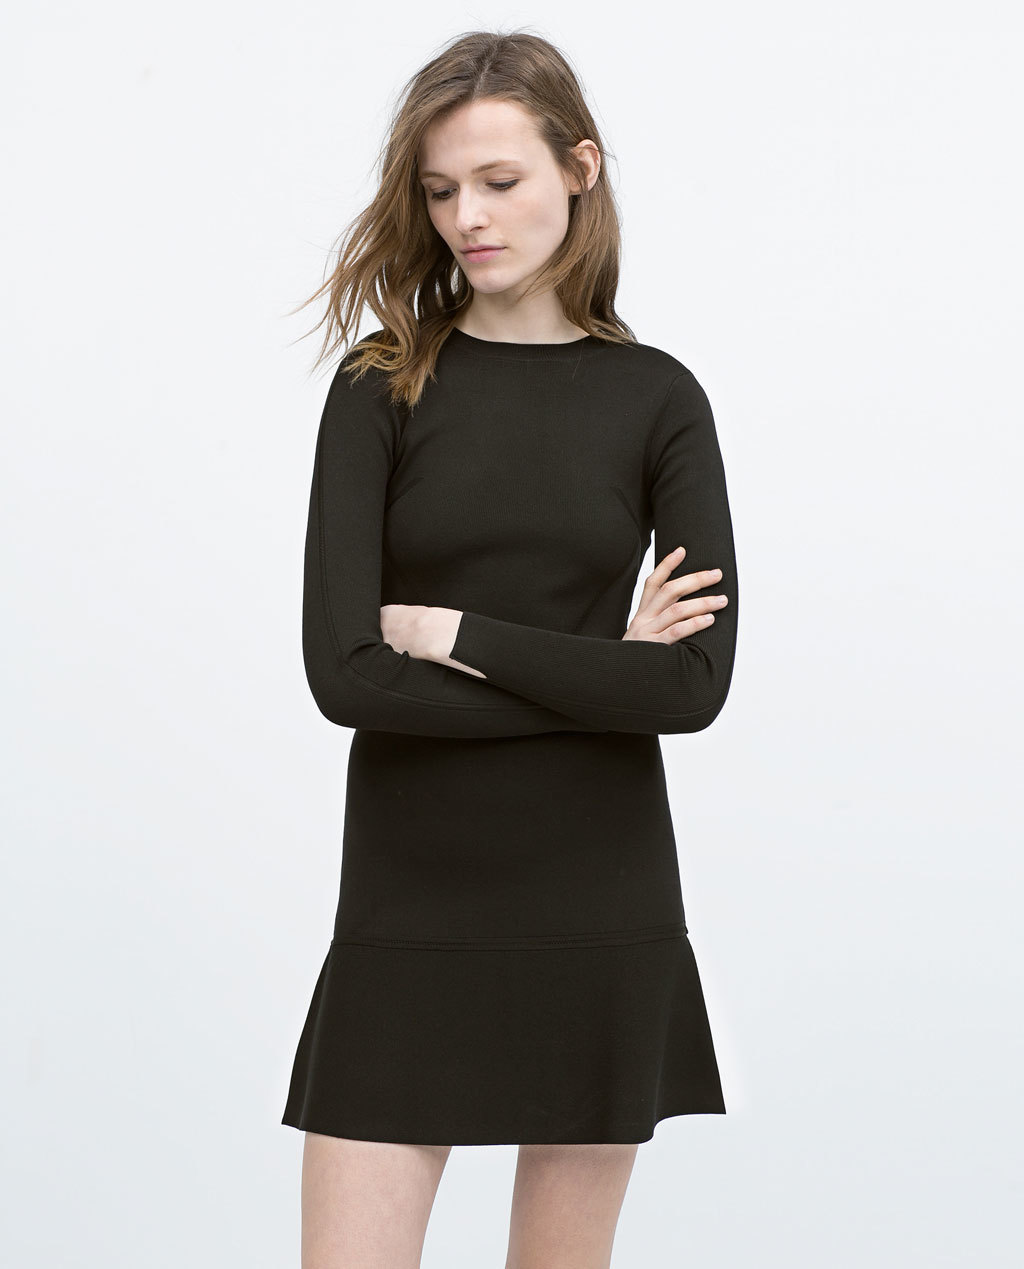 Long Sleeve Mini Dress - style: shift; length: mini; pattern: plain; predominant colour: black; occasions: casual, evening, creative work; fit: body skimming; fibres: viscose/rayon - stretch; neckline: crew; sleeve length: long sleeve; sleeve style: standard; pattern type: fabric; texture group: jersey - stretchy/drapey; season: s/s 2015; wardrobe: basic